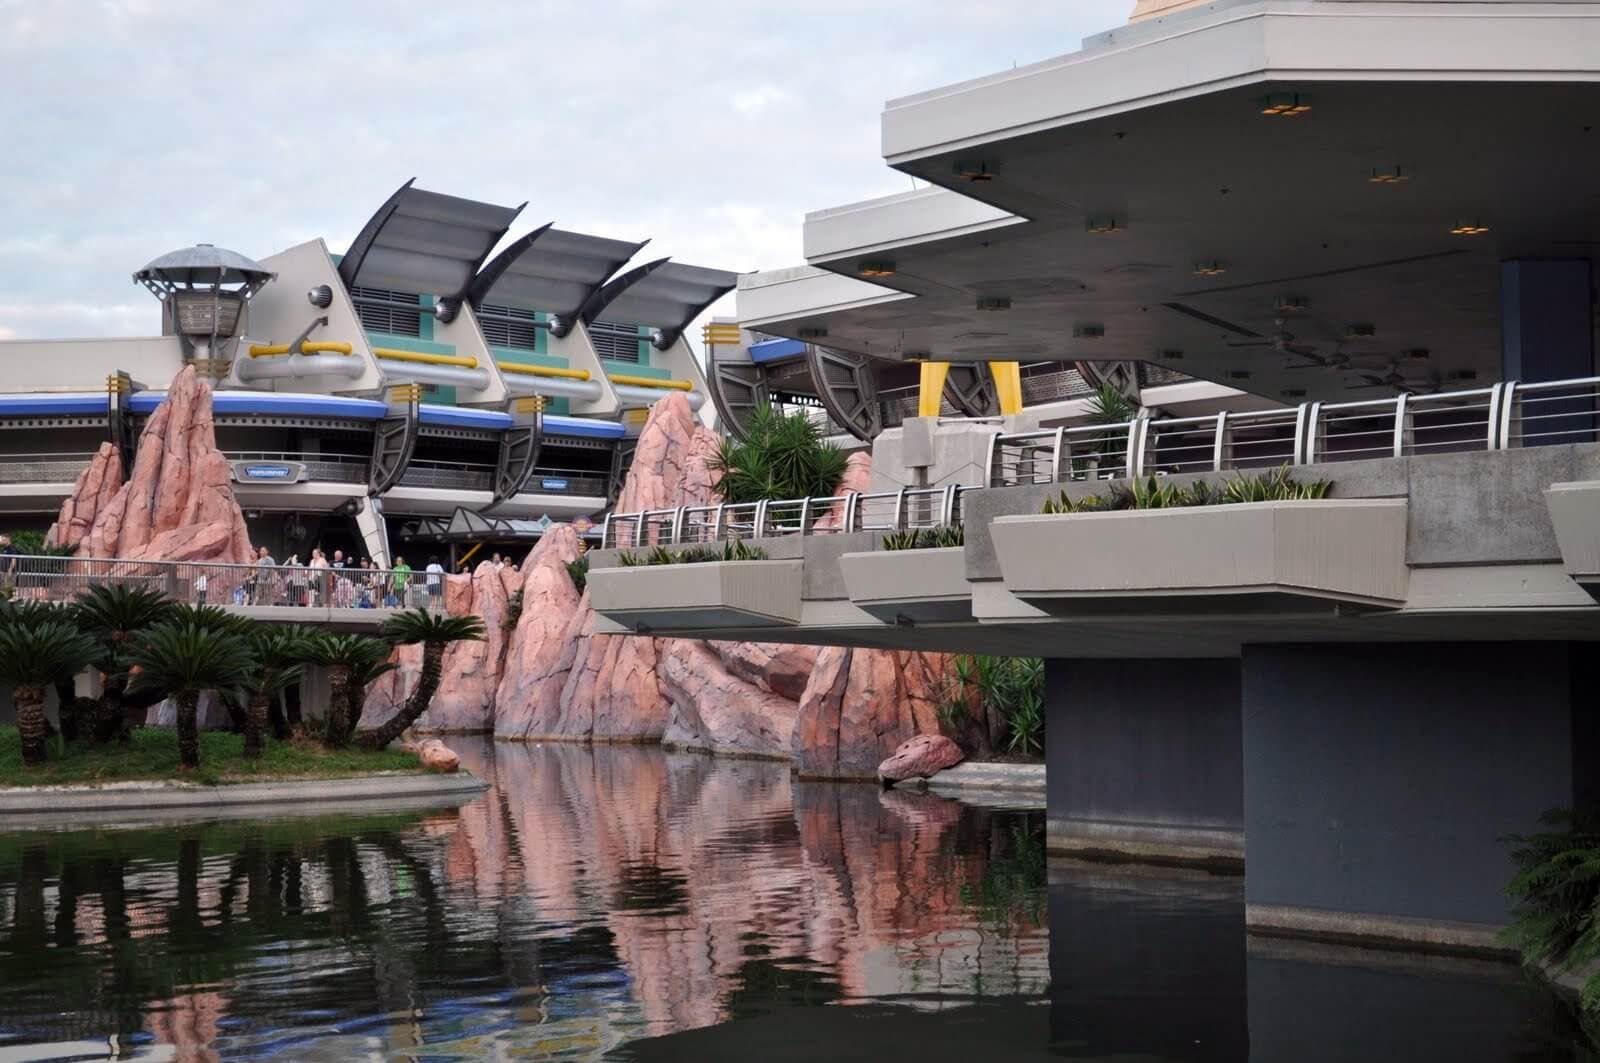 Napping at Disney? Oh yeah! Here's where...